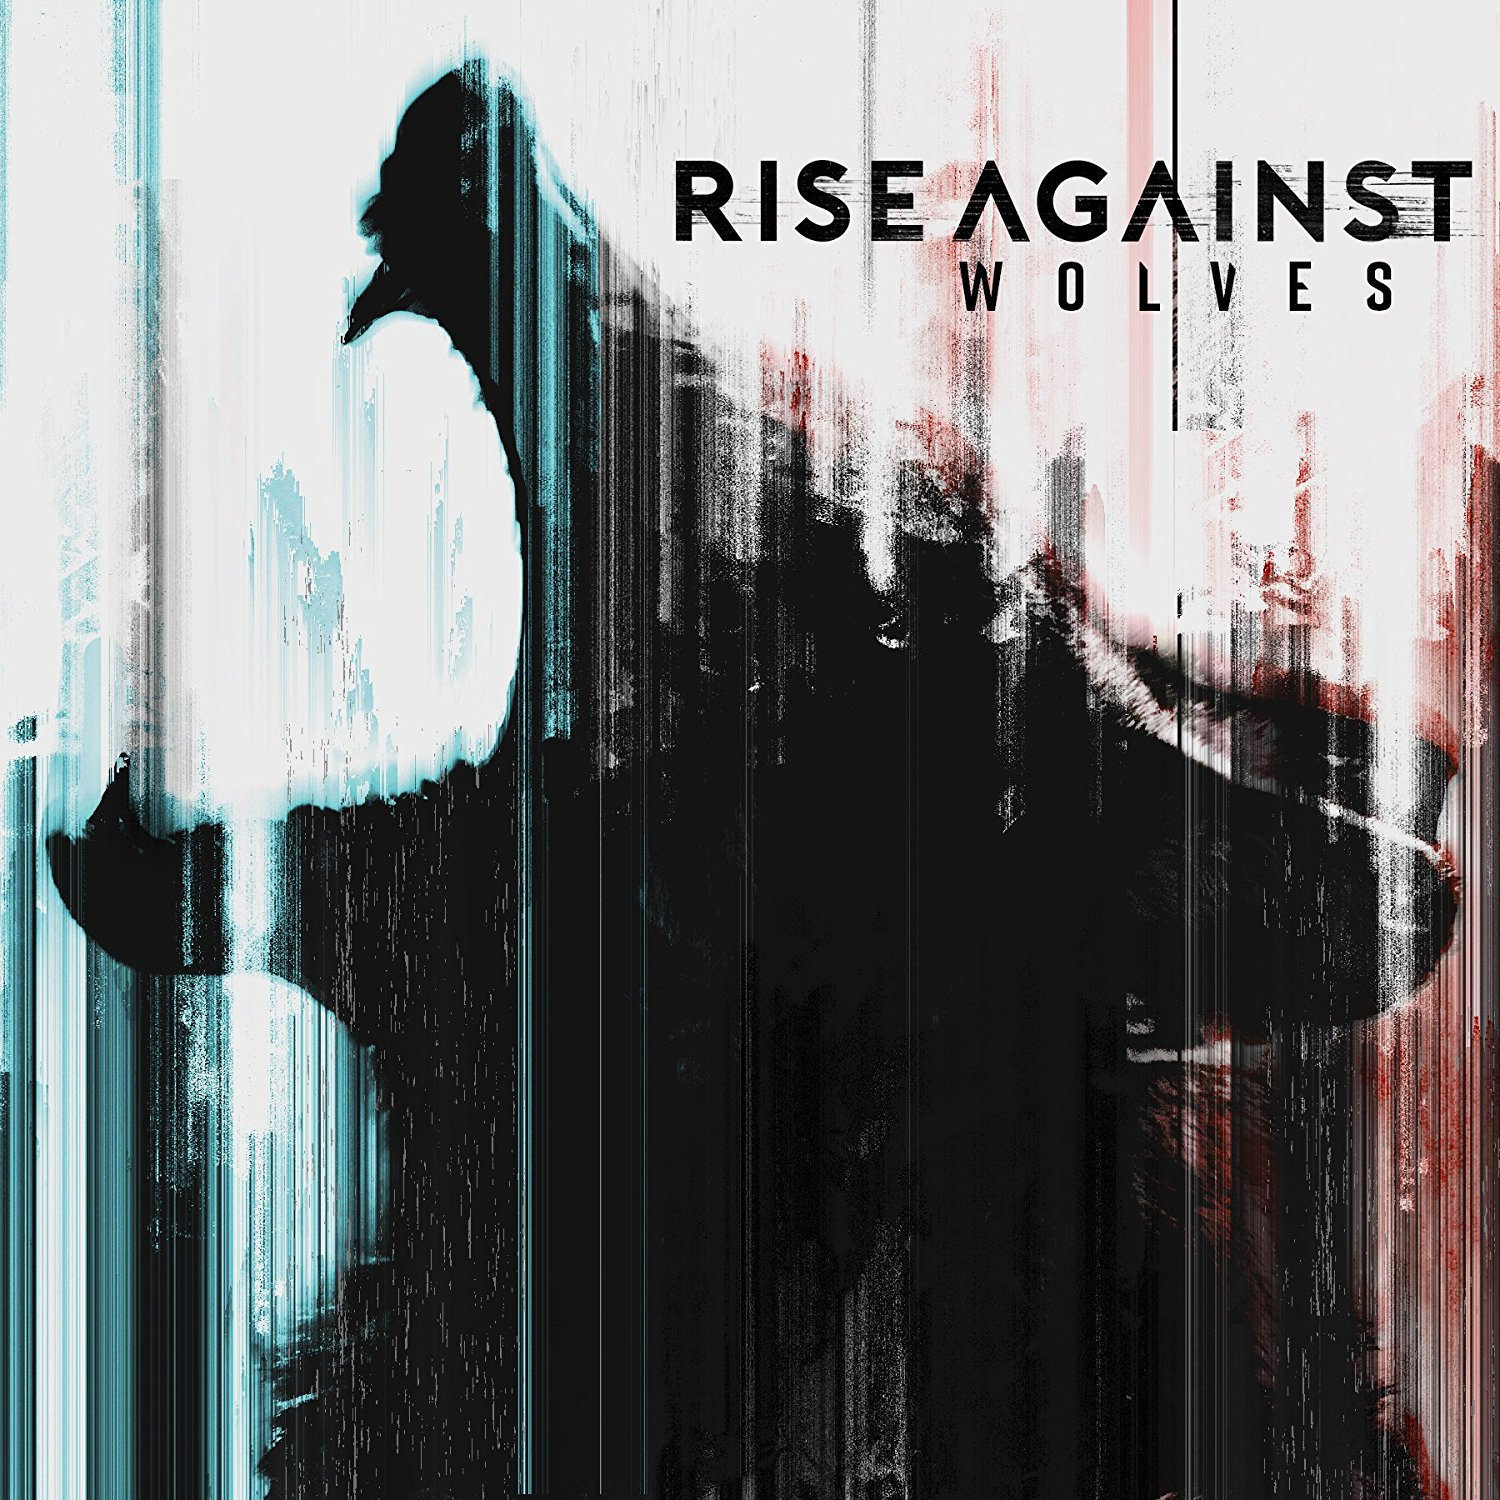 Cassette : Rise Against - Wolves [explicit Content] (Cassette)